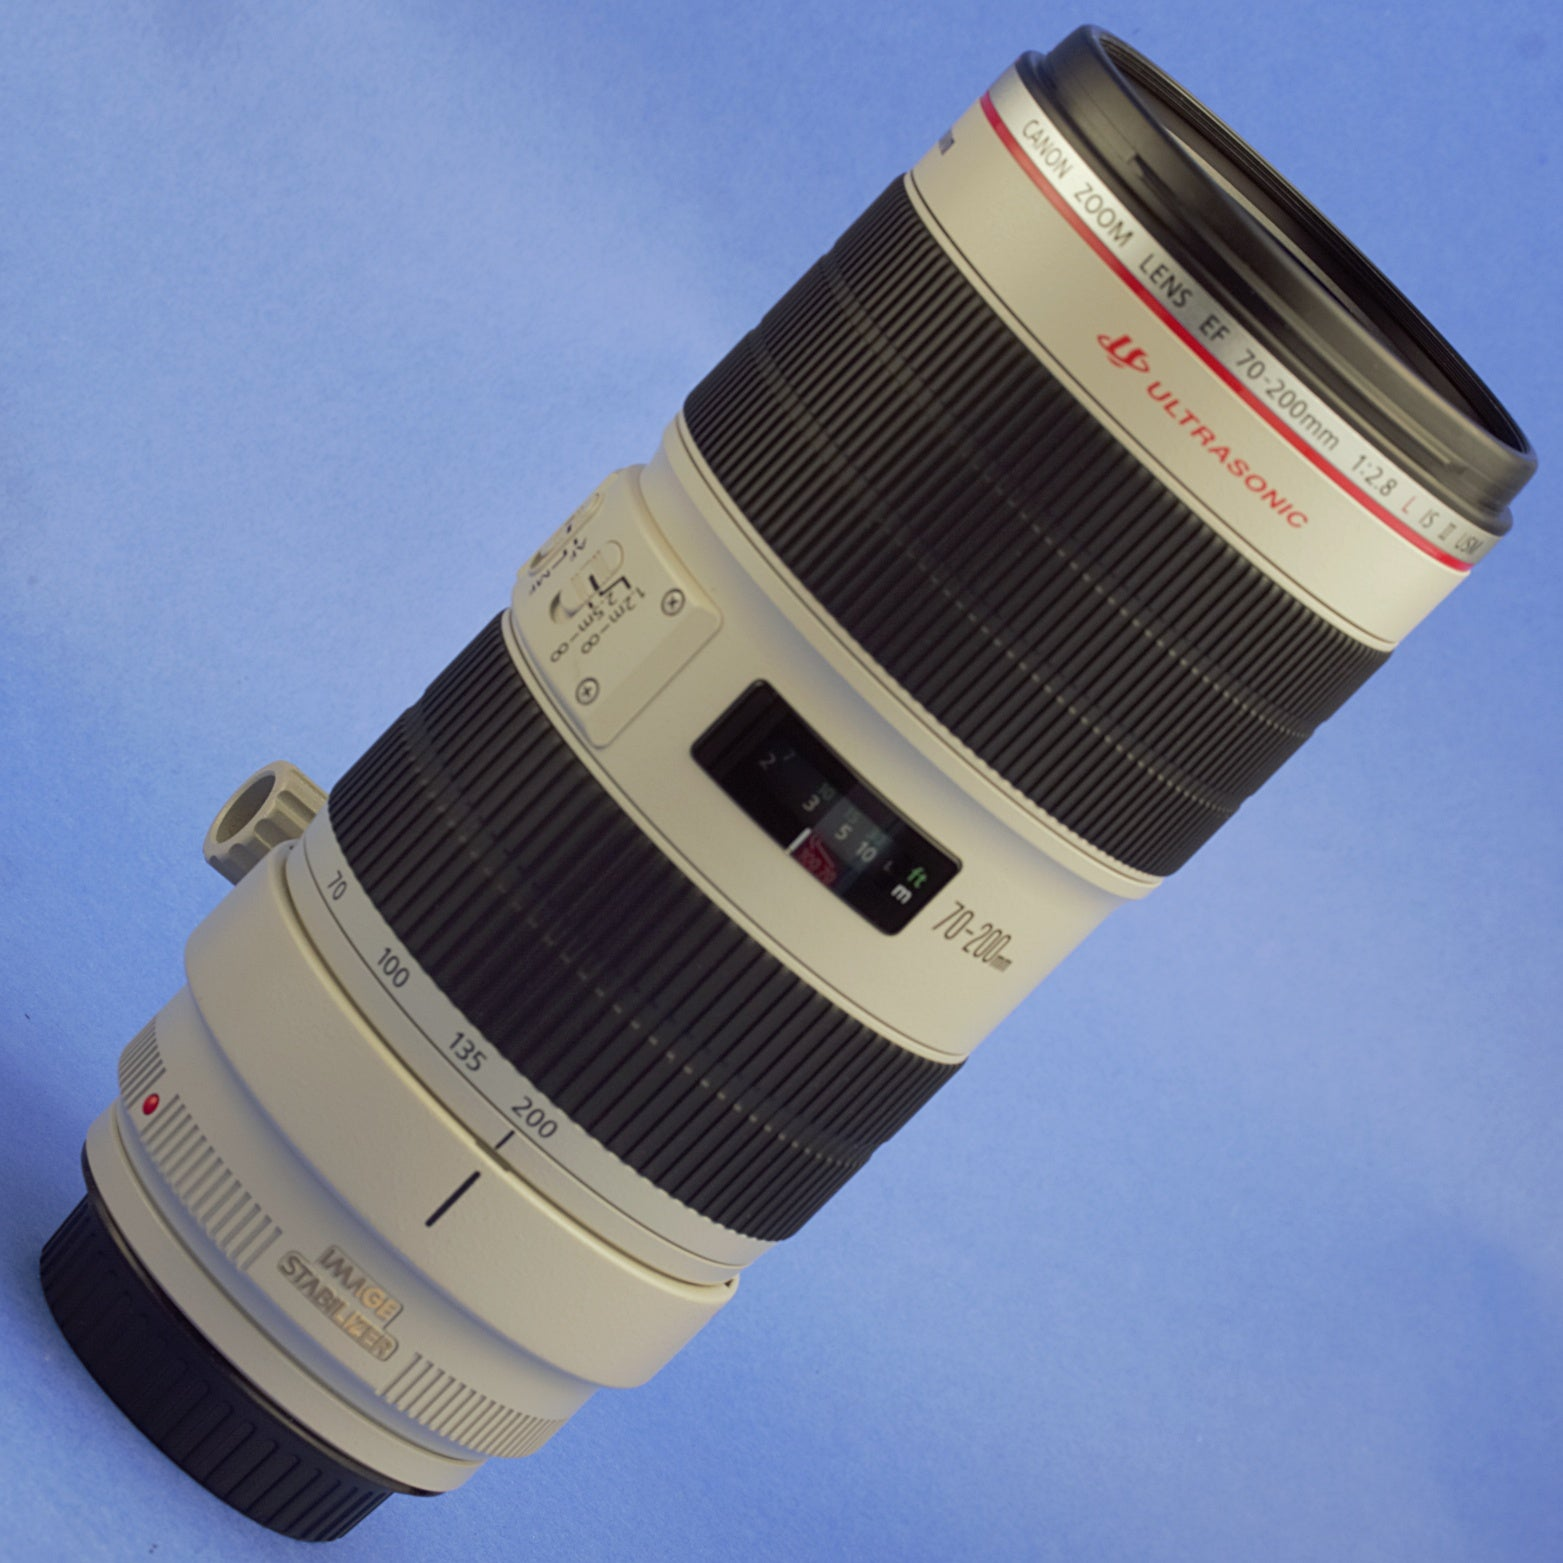 Canon EF 70-200mm 2.8 L IS II Lens Mint Condition